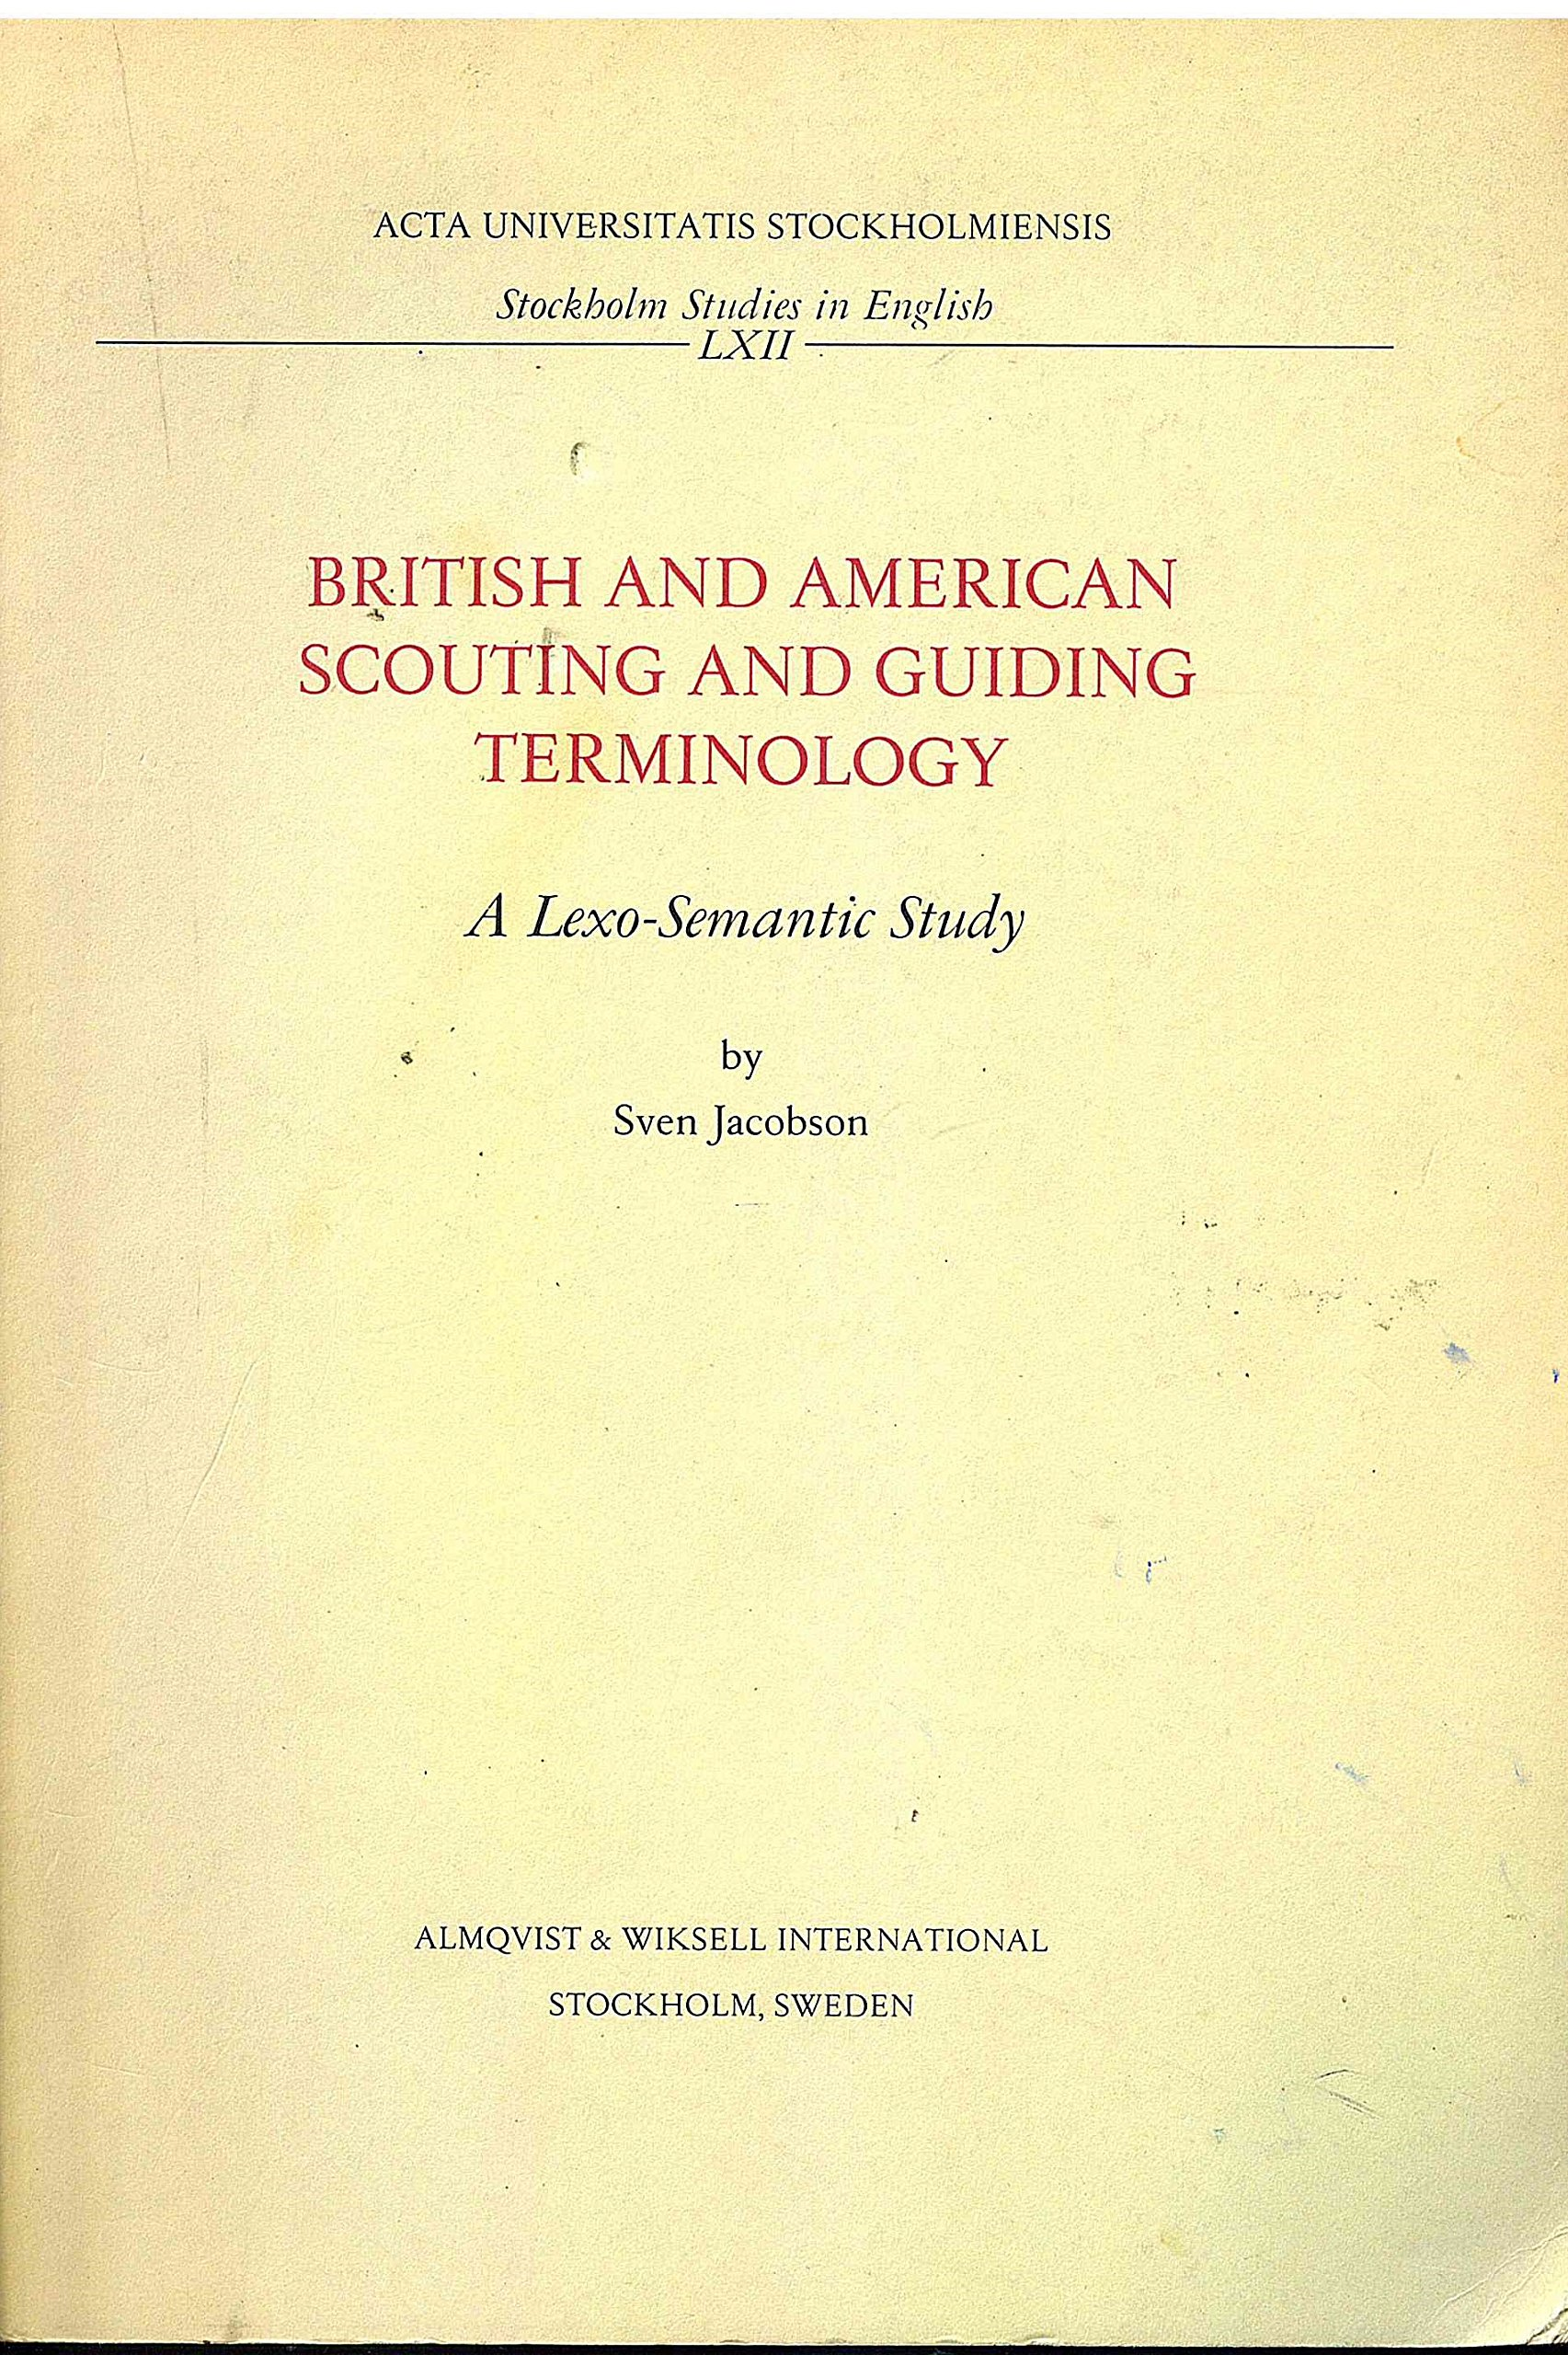 British & American Scouting & Guiding Terminology: A Lexo-semantic Study (Stockholm Studies in English) by Almqvist & Wiksell Intl